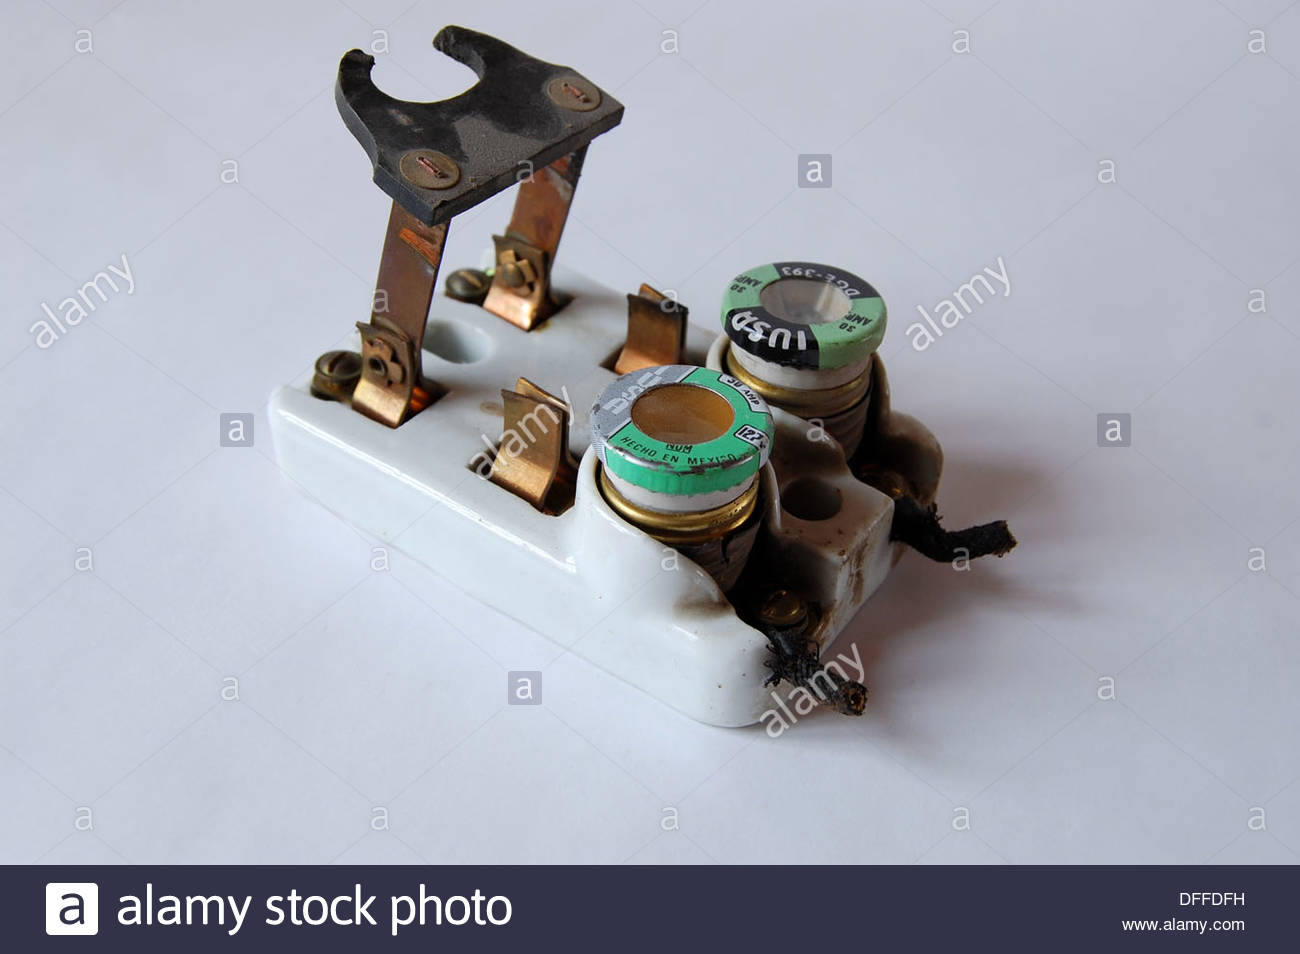 hight resolution of 1950s vintage ceramic fuse box electrical circuit breaker household fuse box residential popped fuse box fuse